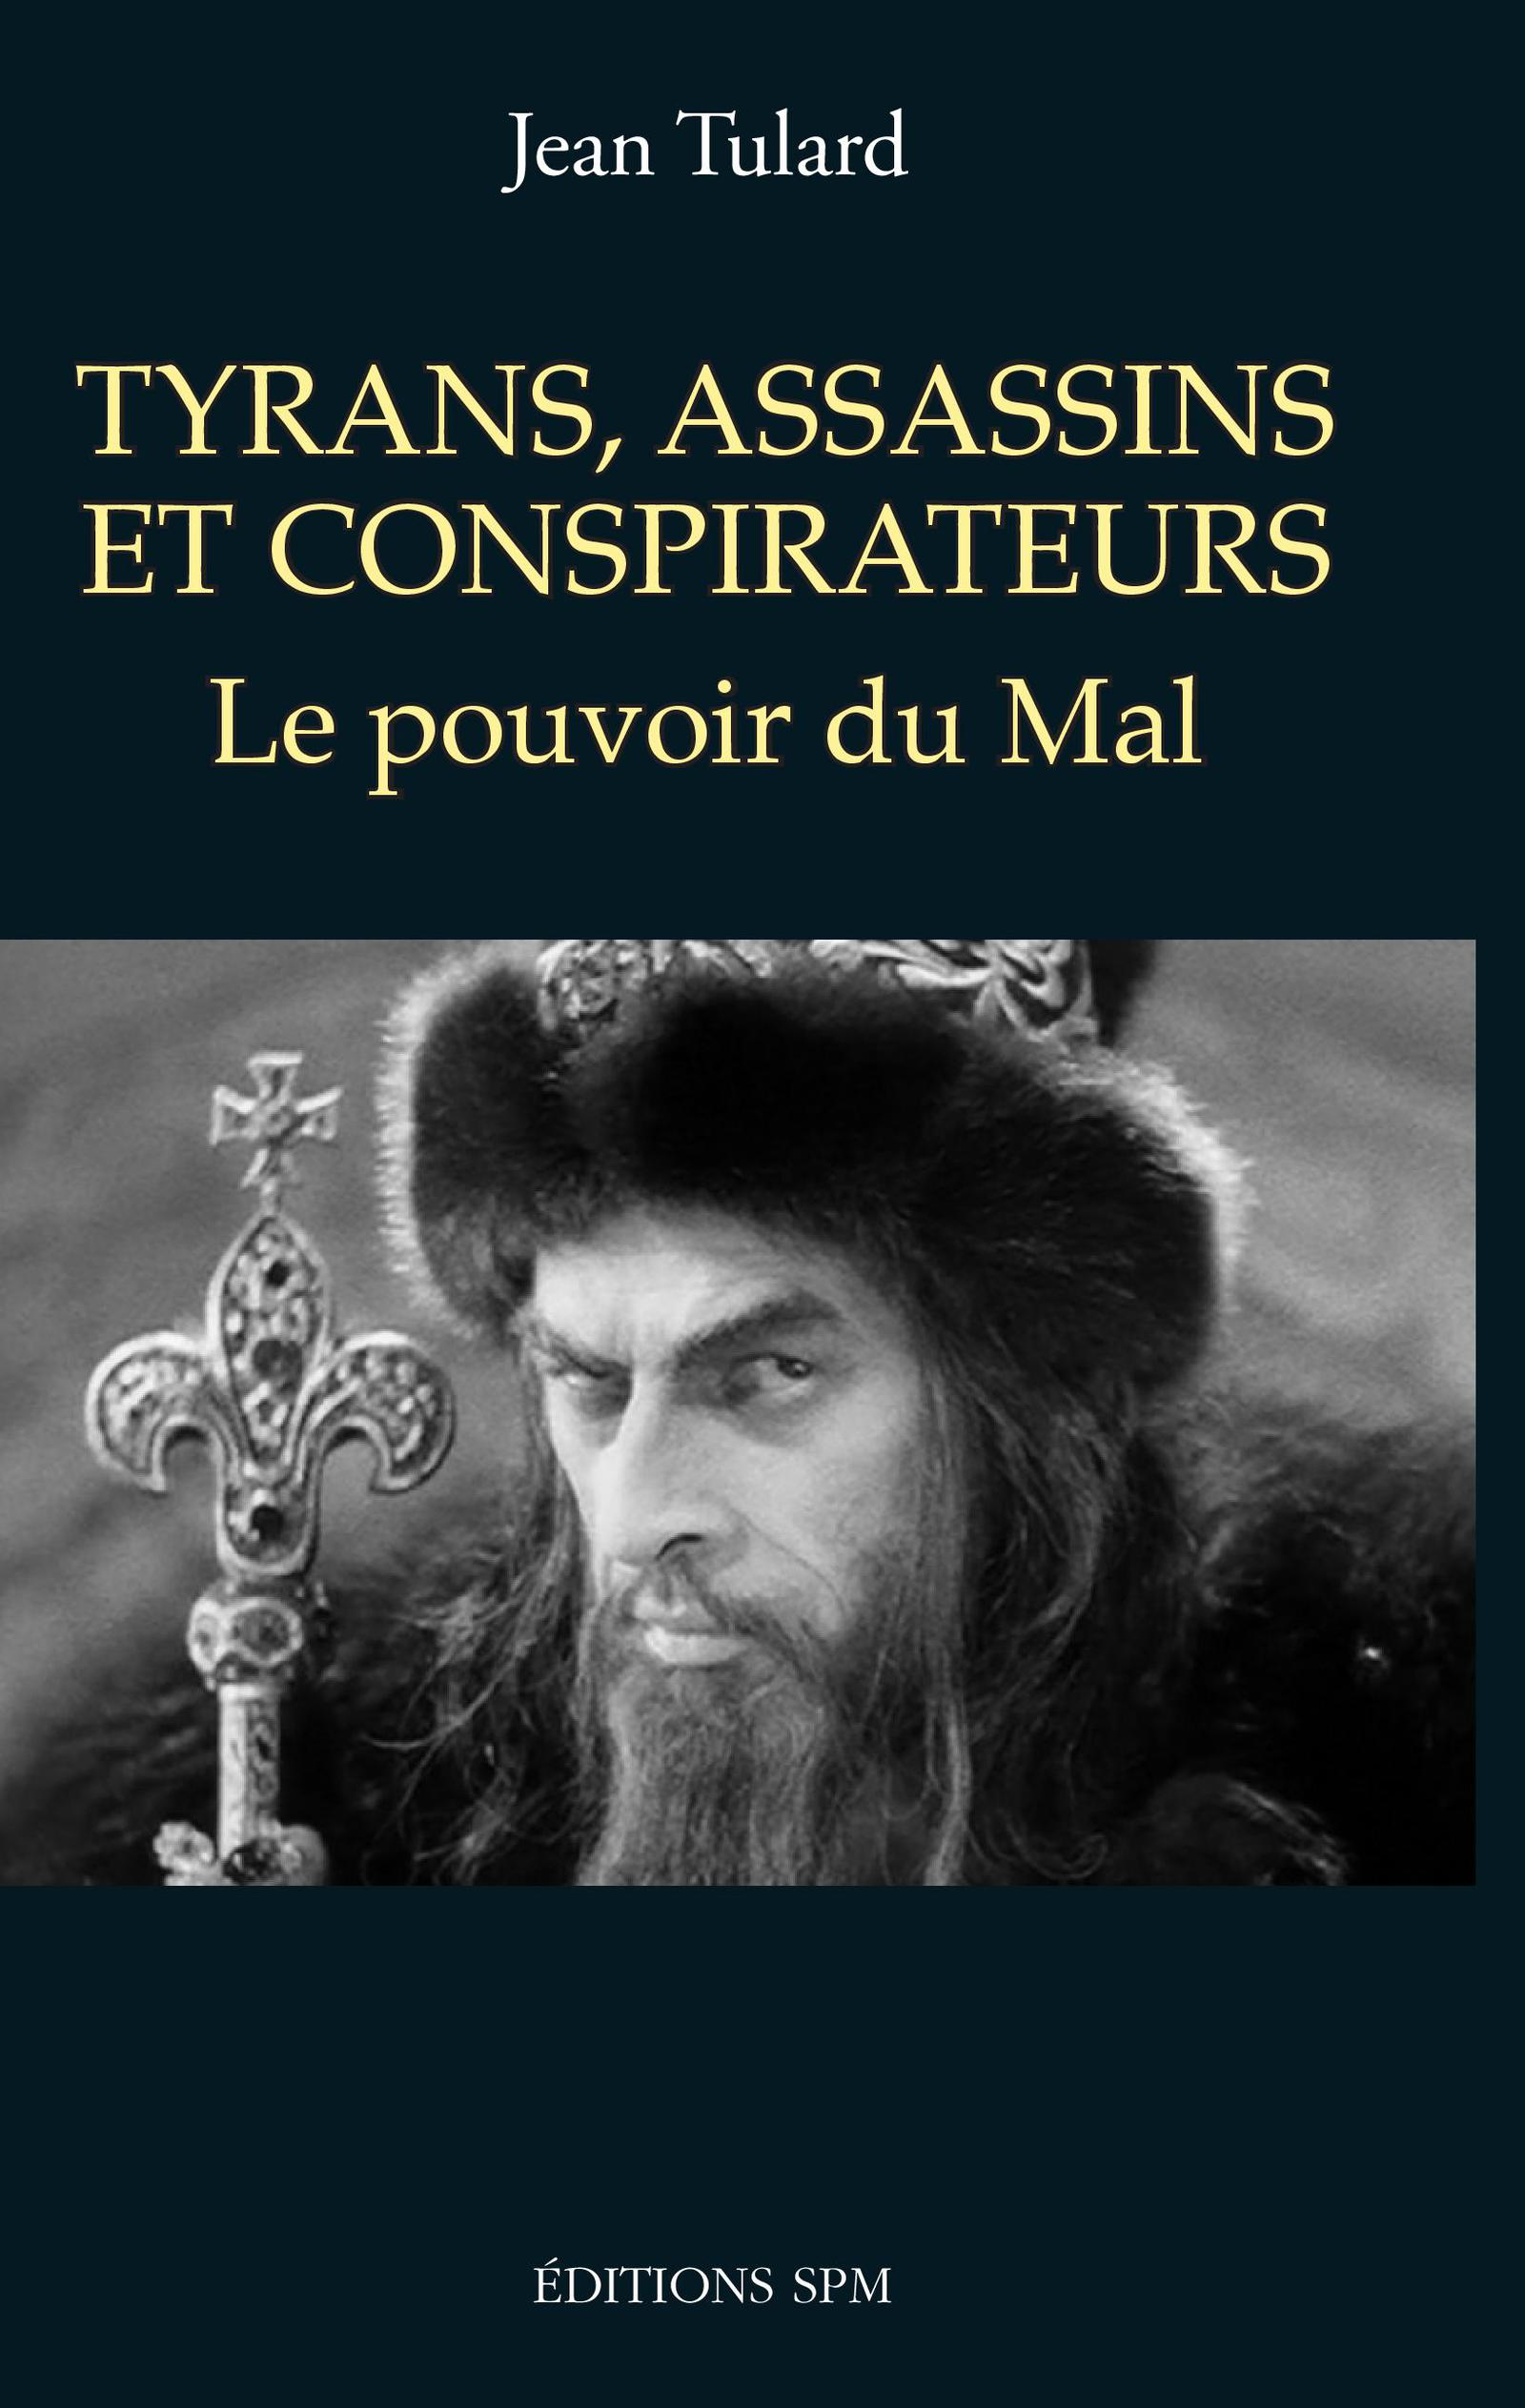 Tyrans, assassins et conspirateurs